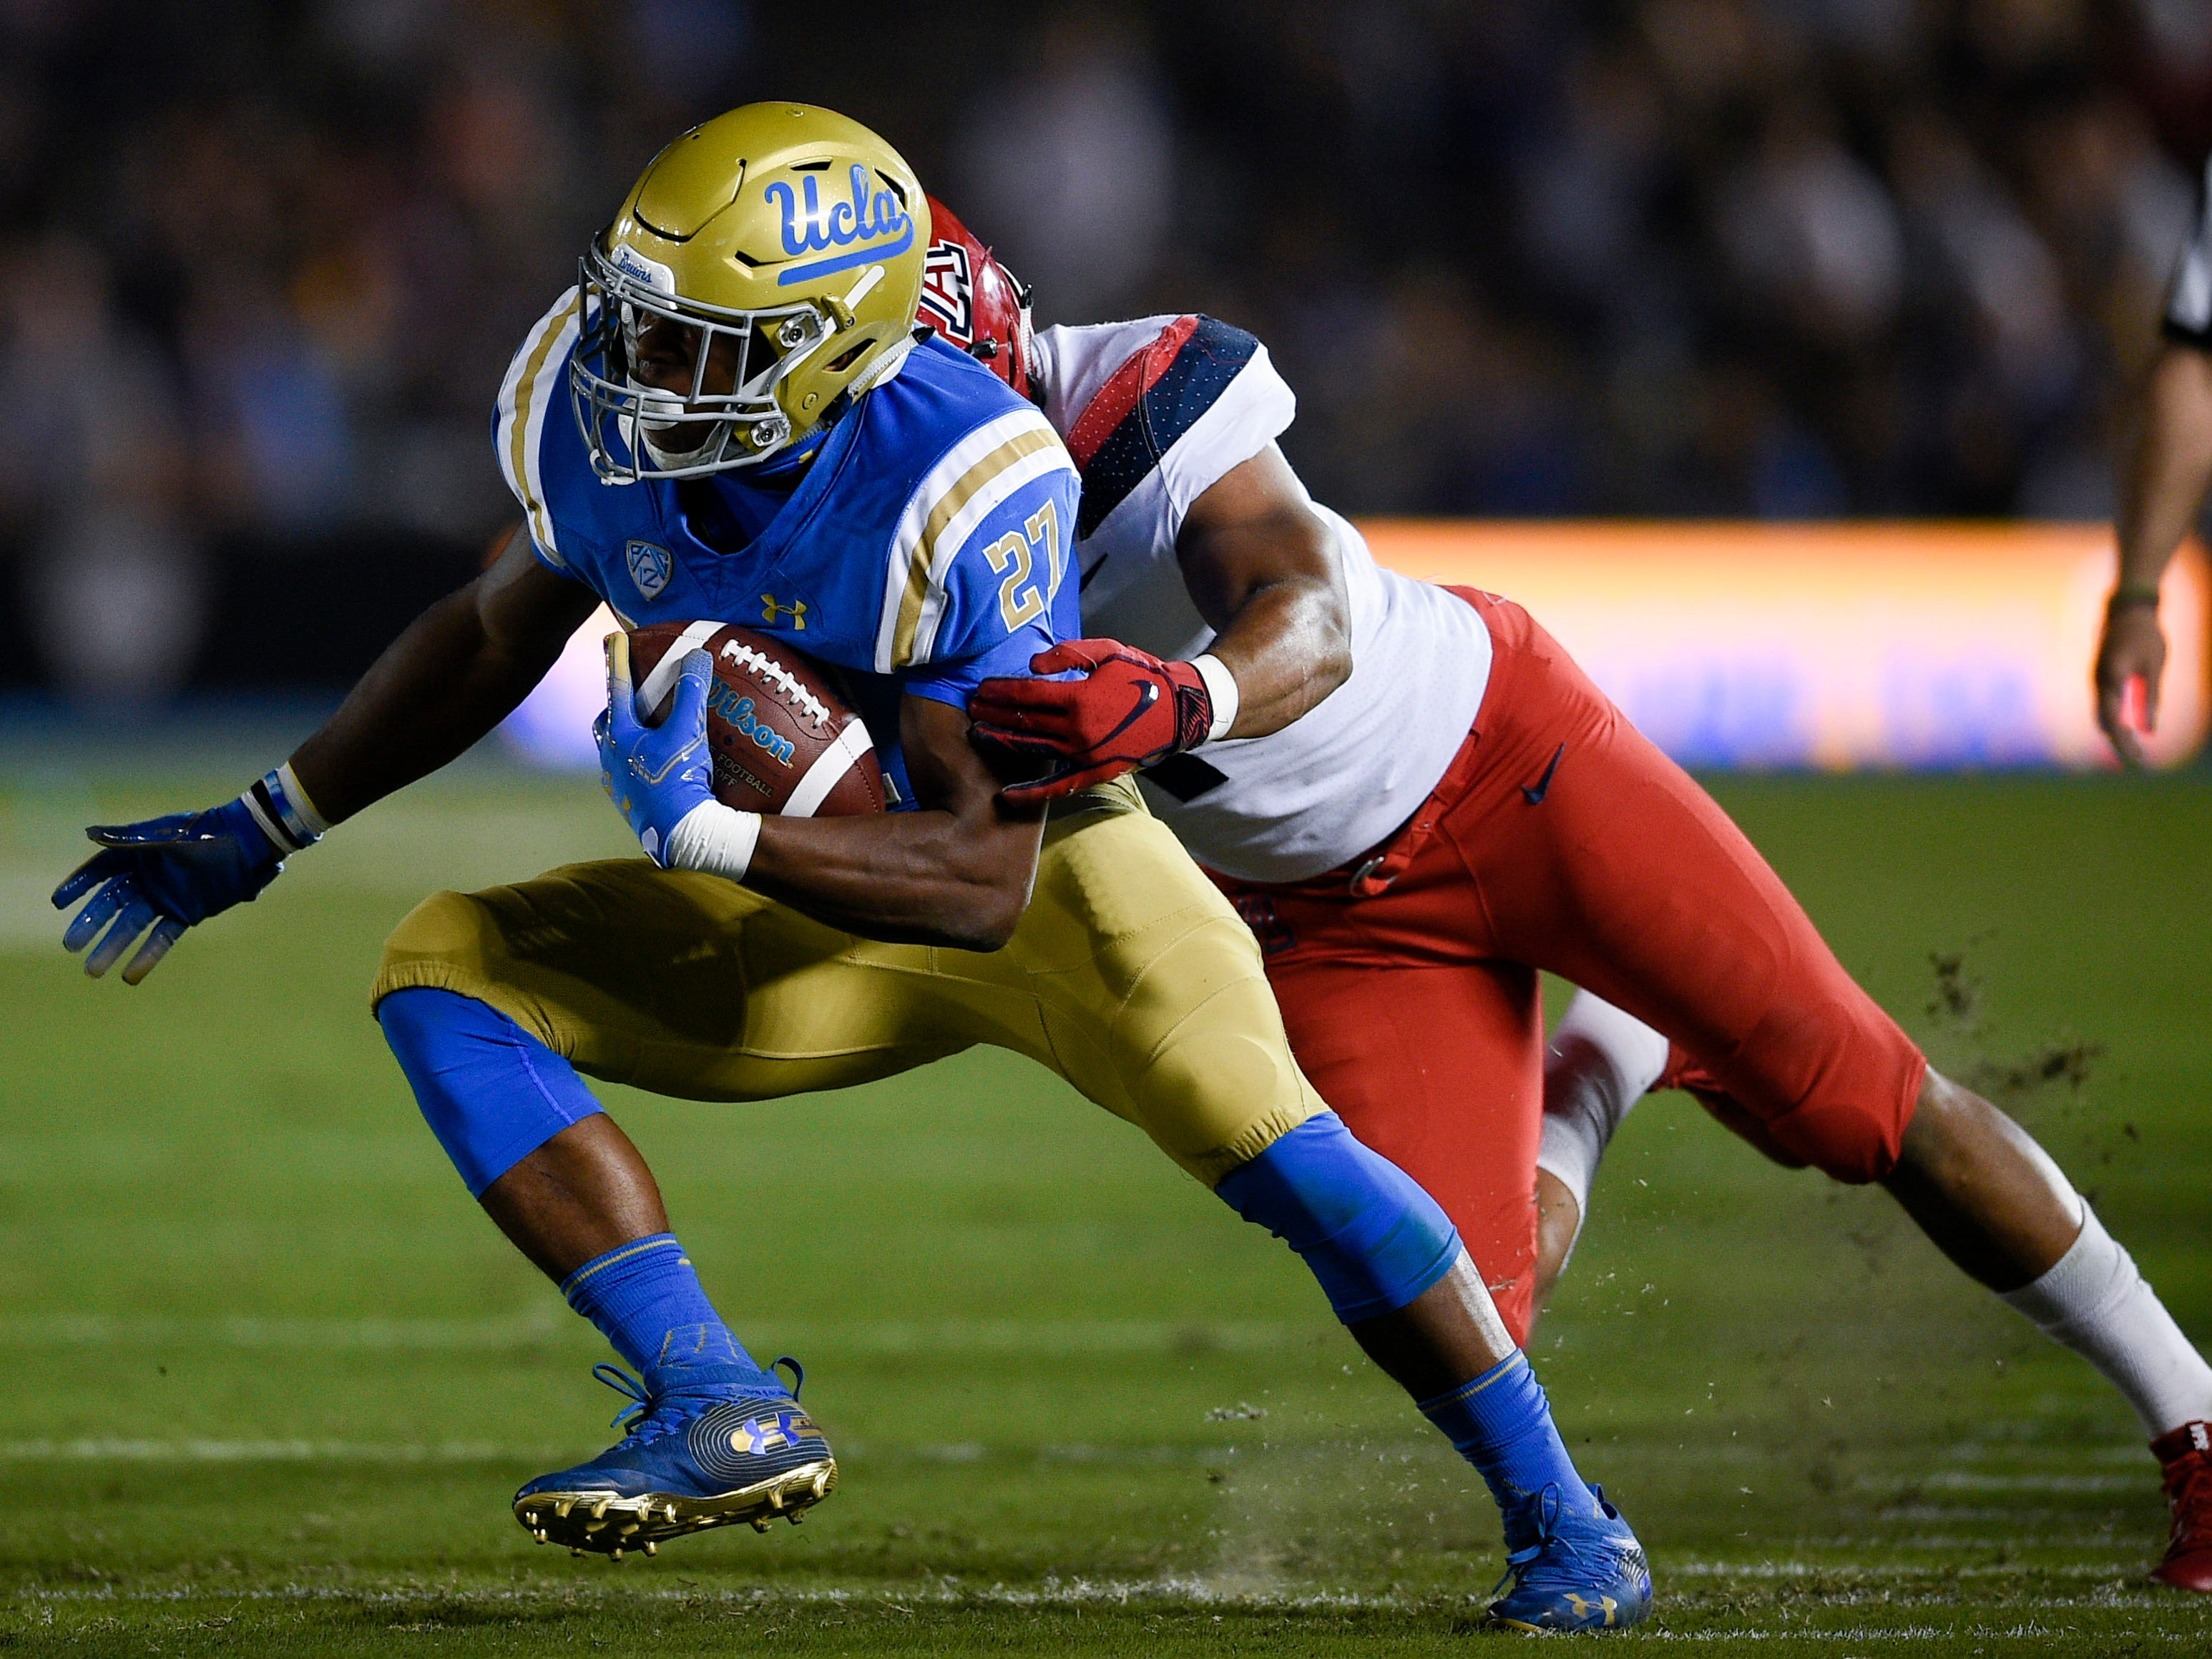 Oct 20, 2018; Pasadena, CA, USA; UCLA Bruins running back Joshua Kelley (27) runs the ball defended by Arizona Wildcats linebacker Tony Fields II (1) during the first half at Rose Bowl. Mandatory Credit: Kelvin Kuo-USA TODAY Sports